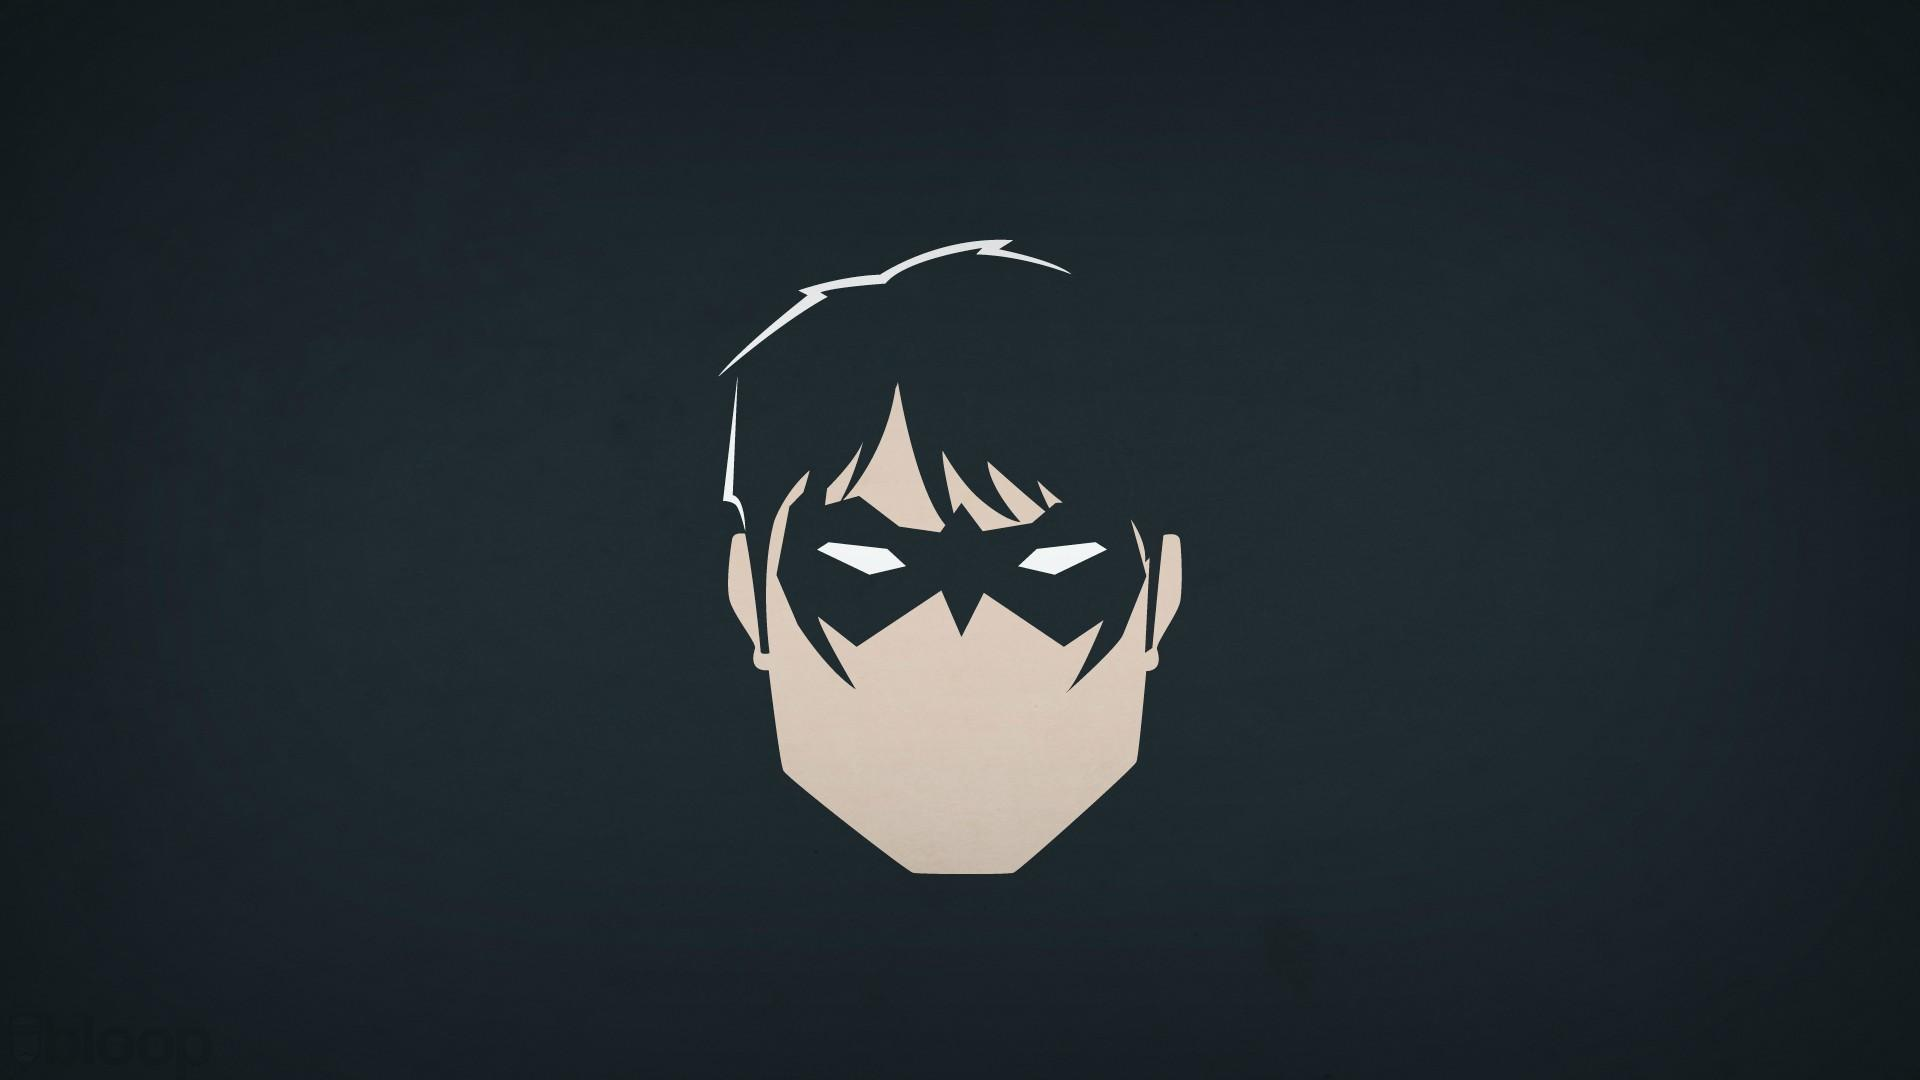 Nightwing Computer Wallpapers Desktop Backgrounds 1920x1080 ID 1920x1080